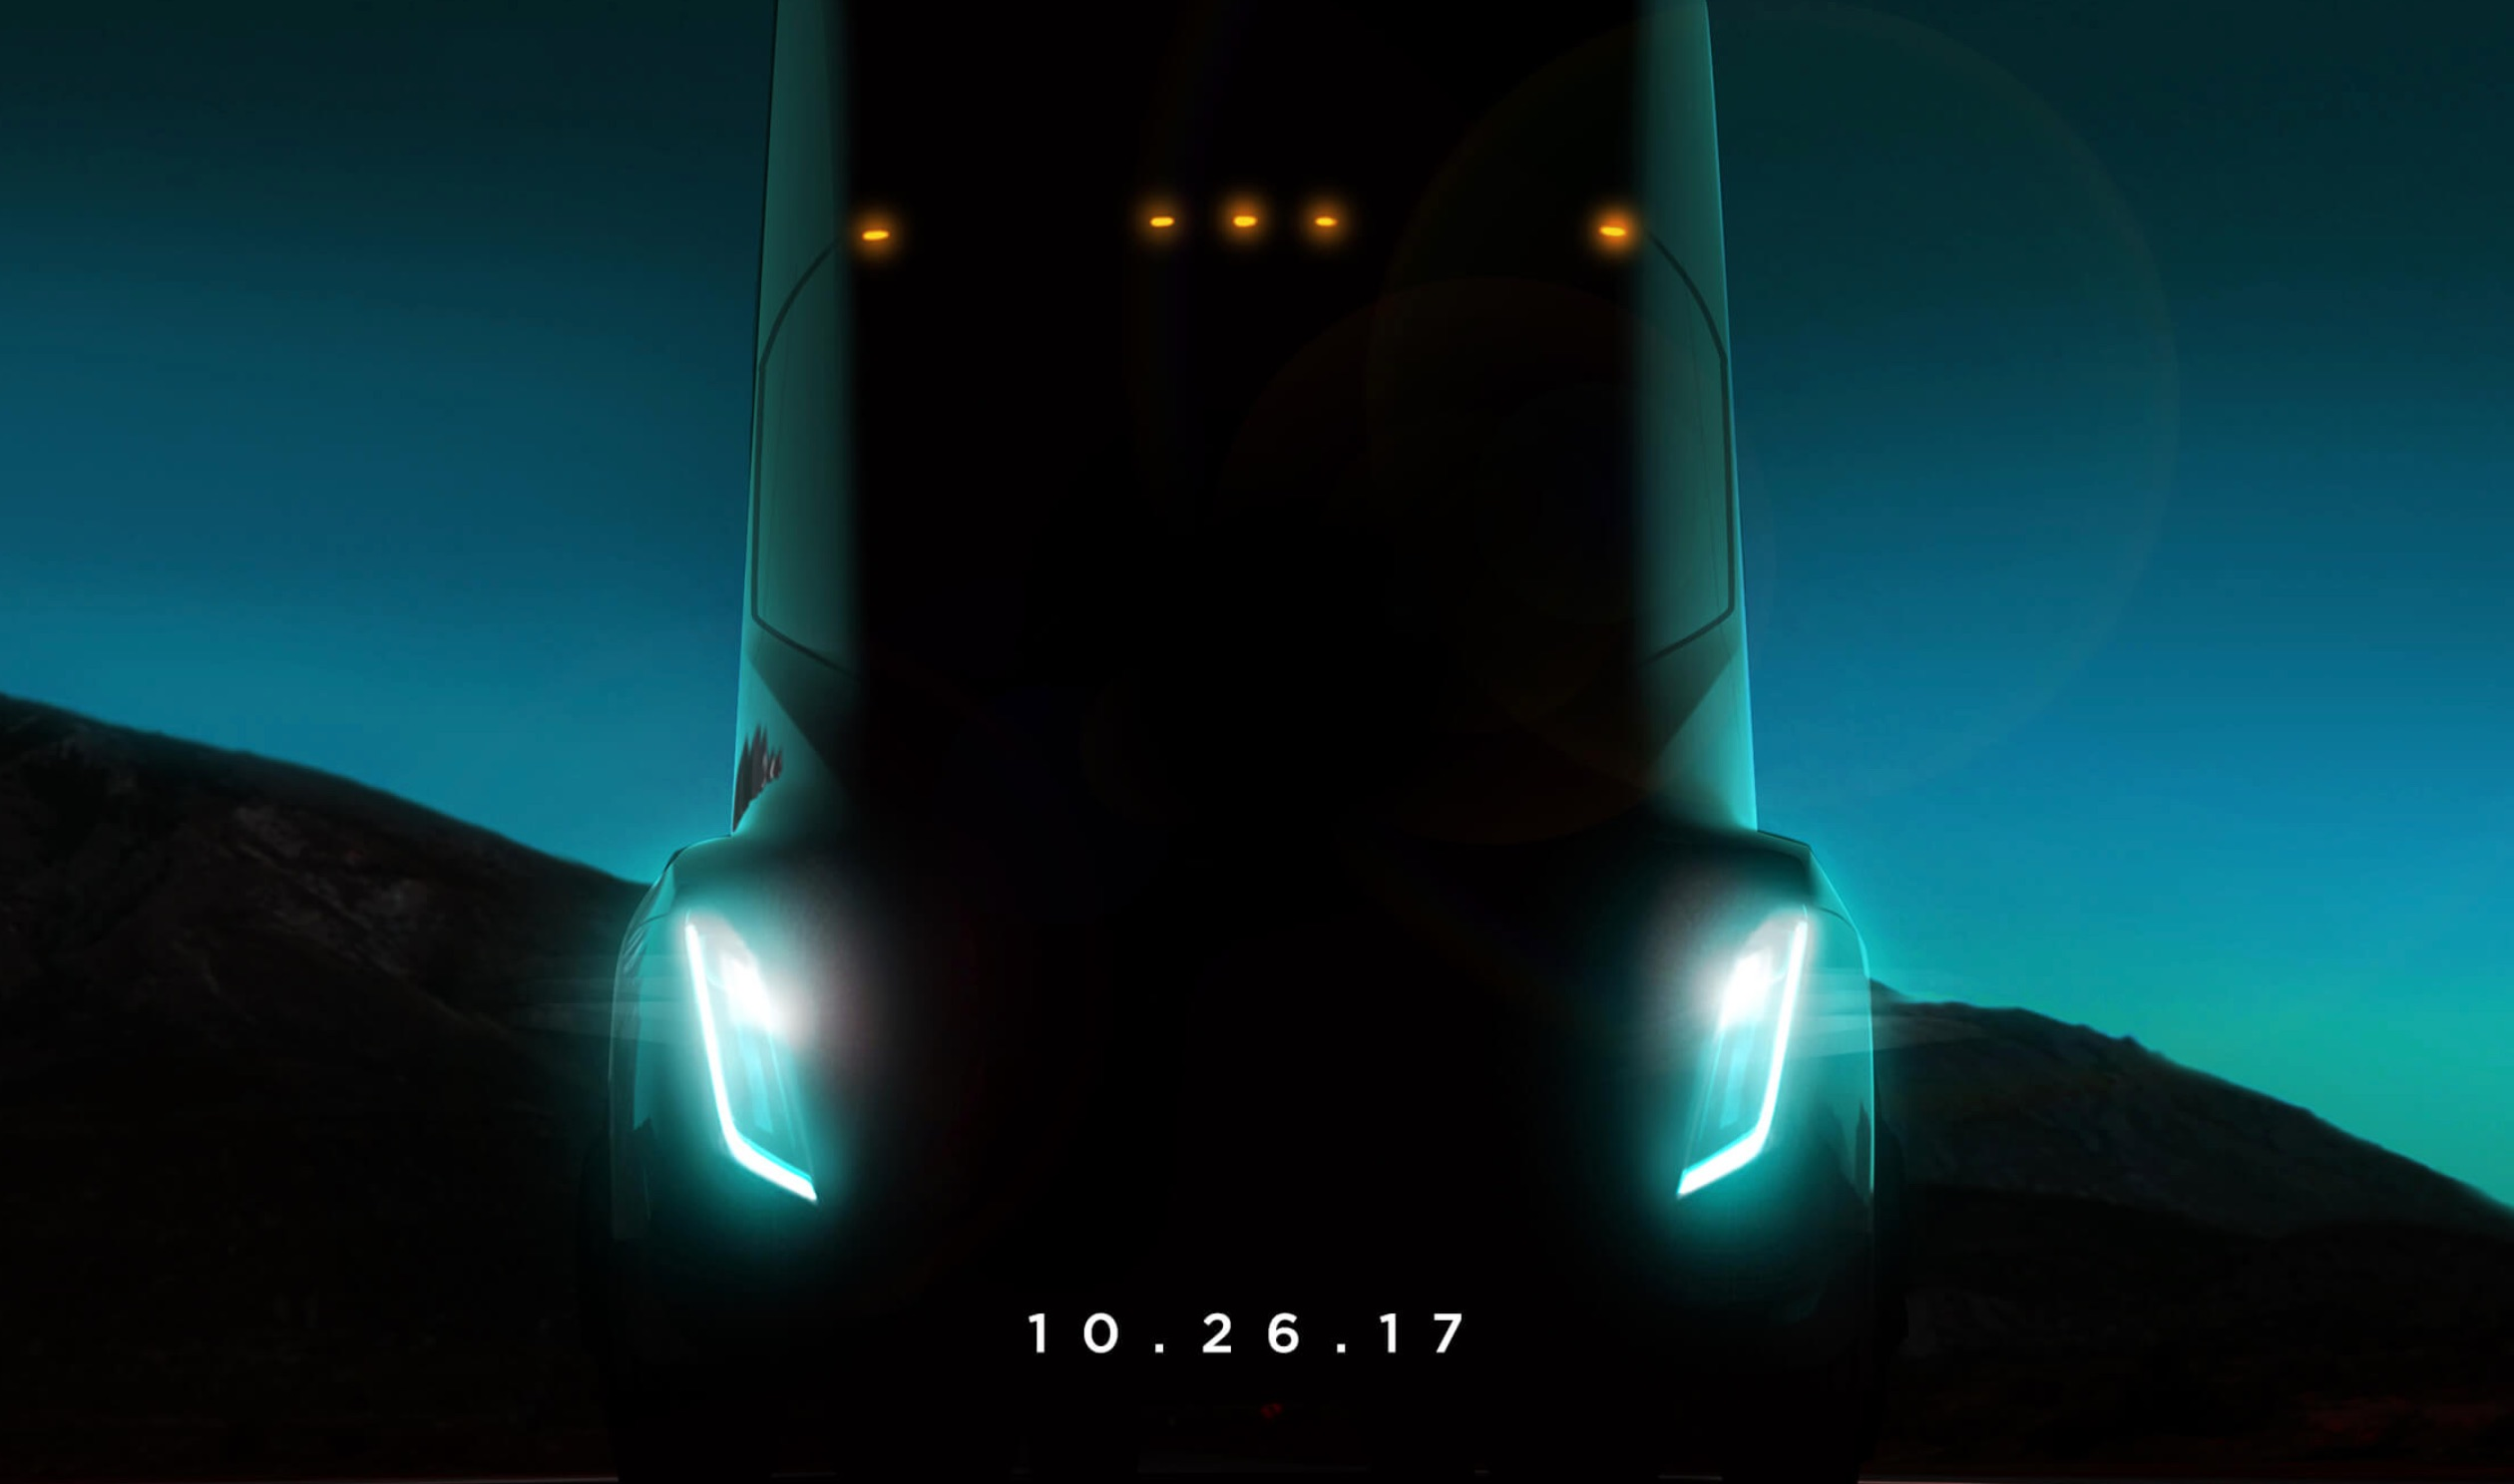 tesla-semi-truck-event-10-26-2017-invitation-teaser